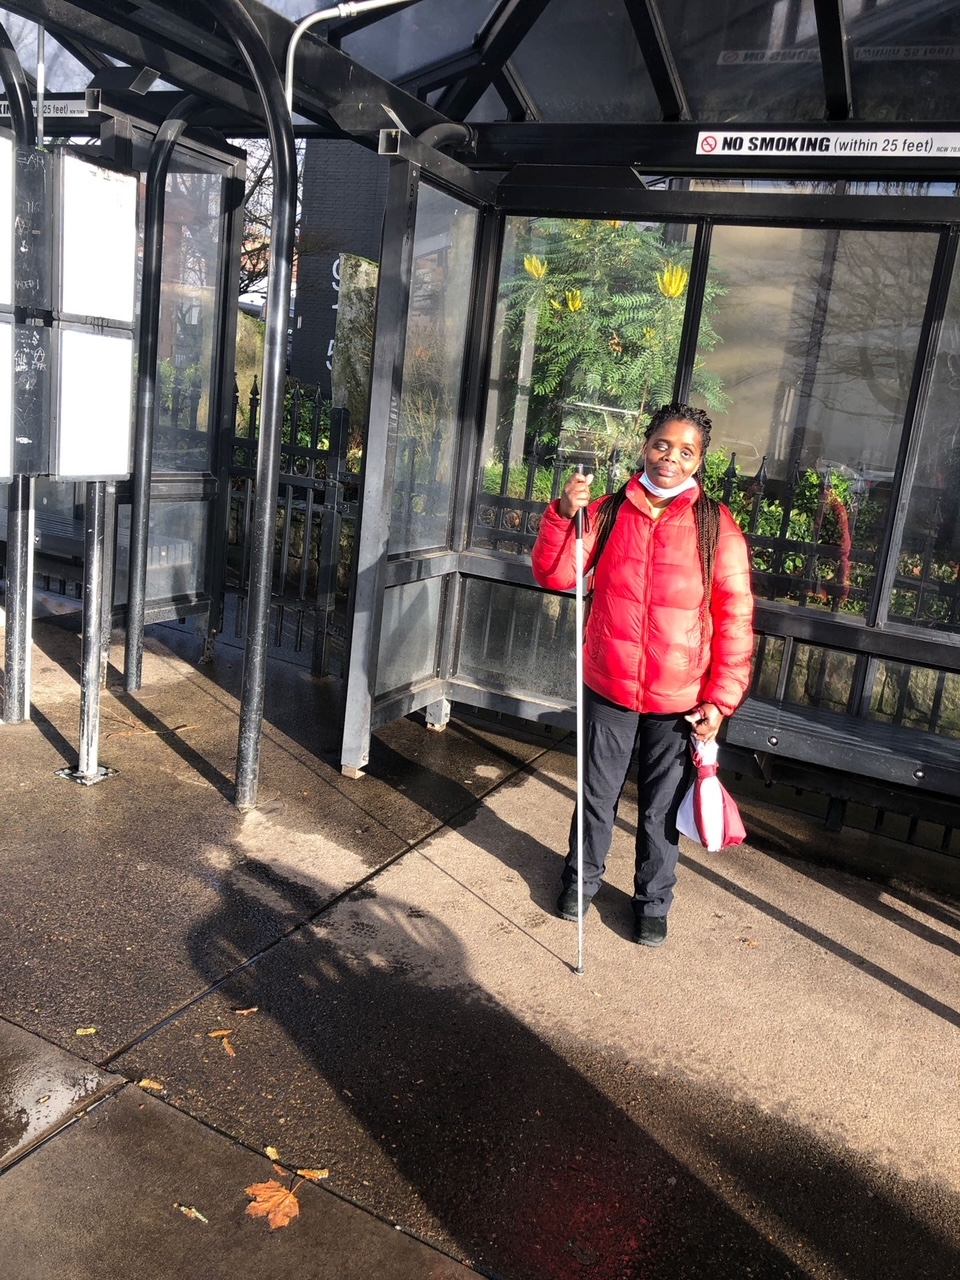 As a transit advocate, Griffith, shown at a bus stop, is drawing attention to areas that Washington policy and lawmakers have neglected. Photo courtesy of Abby Griffith